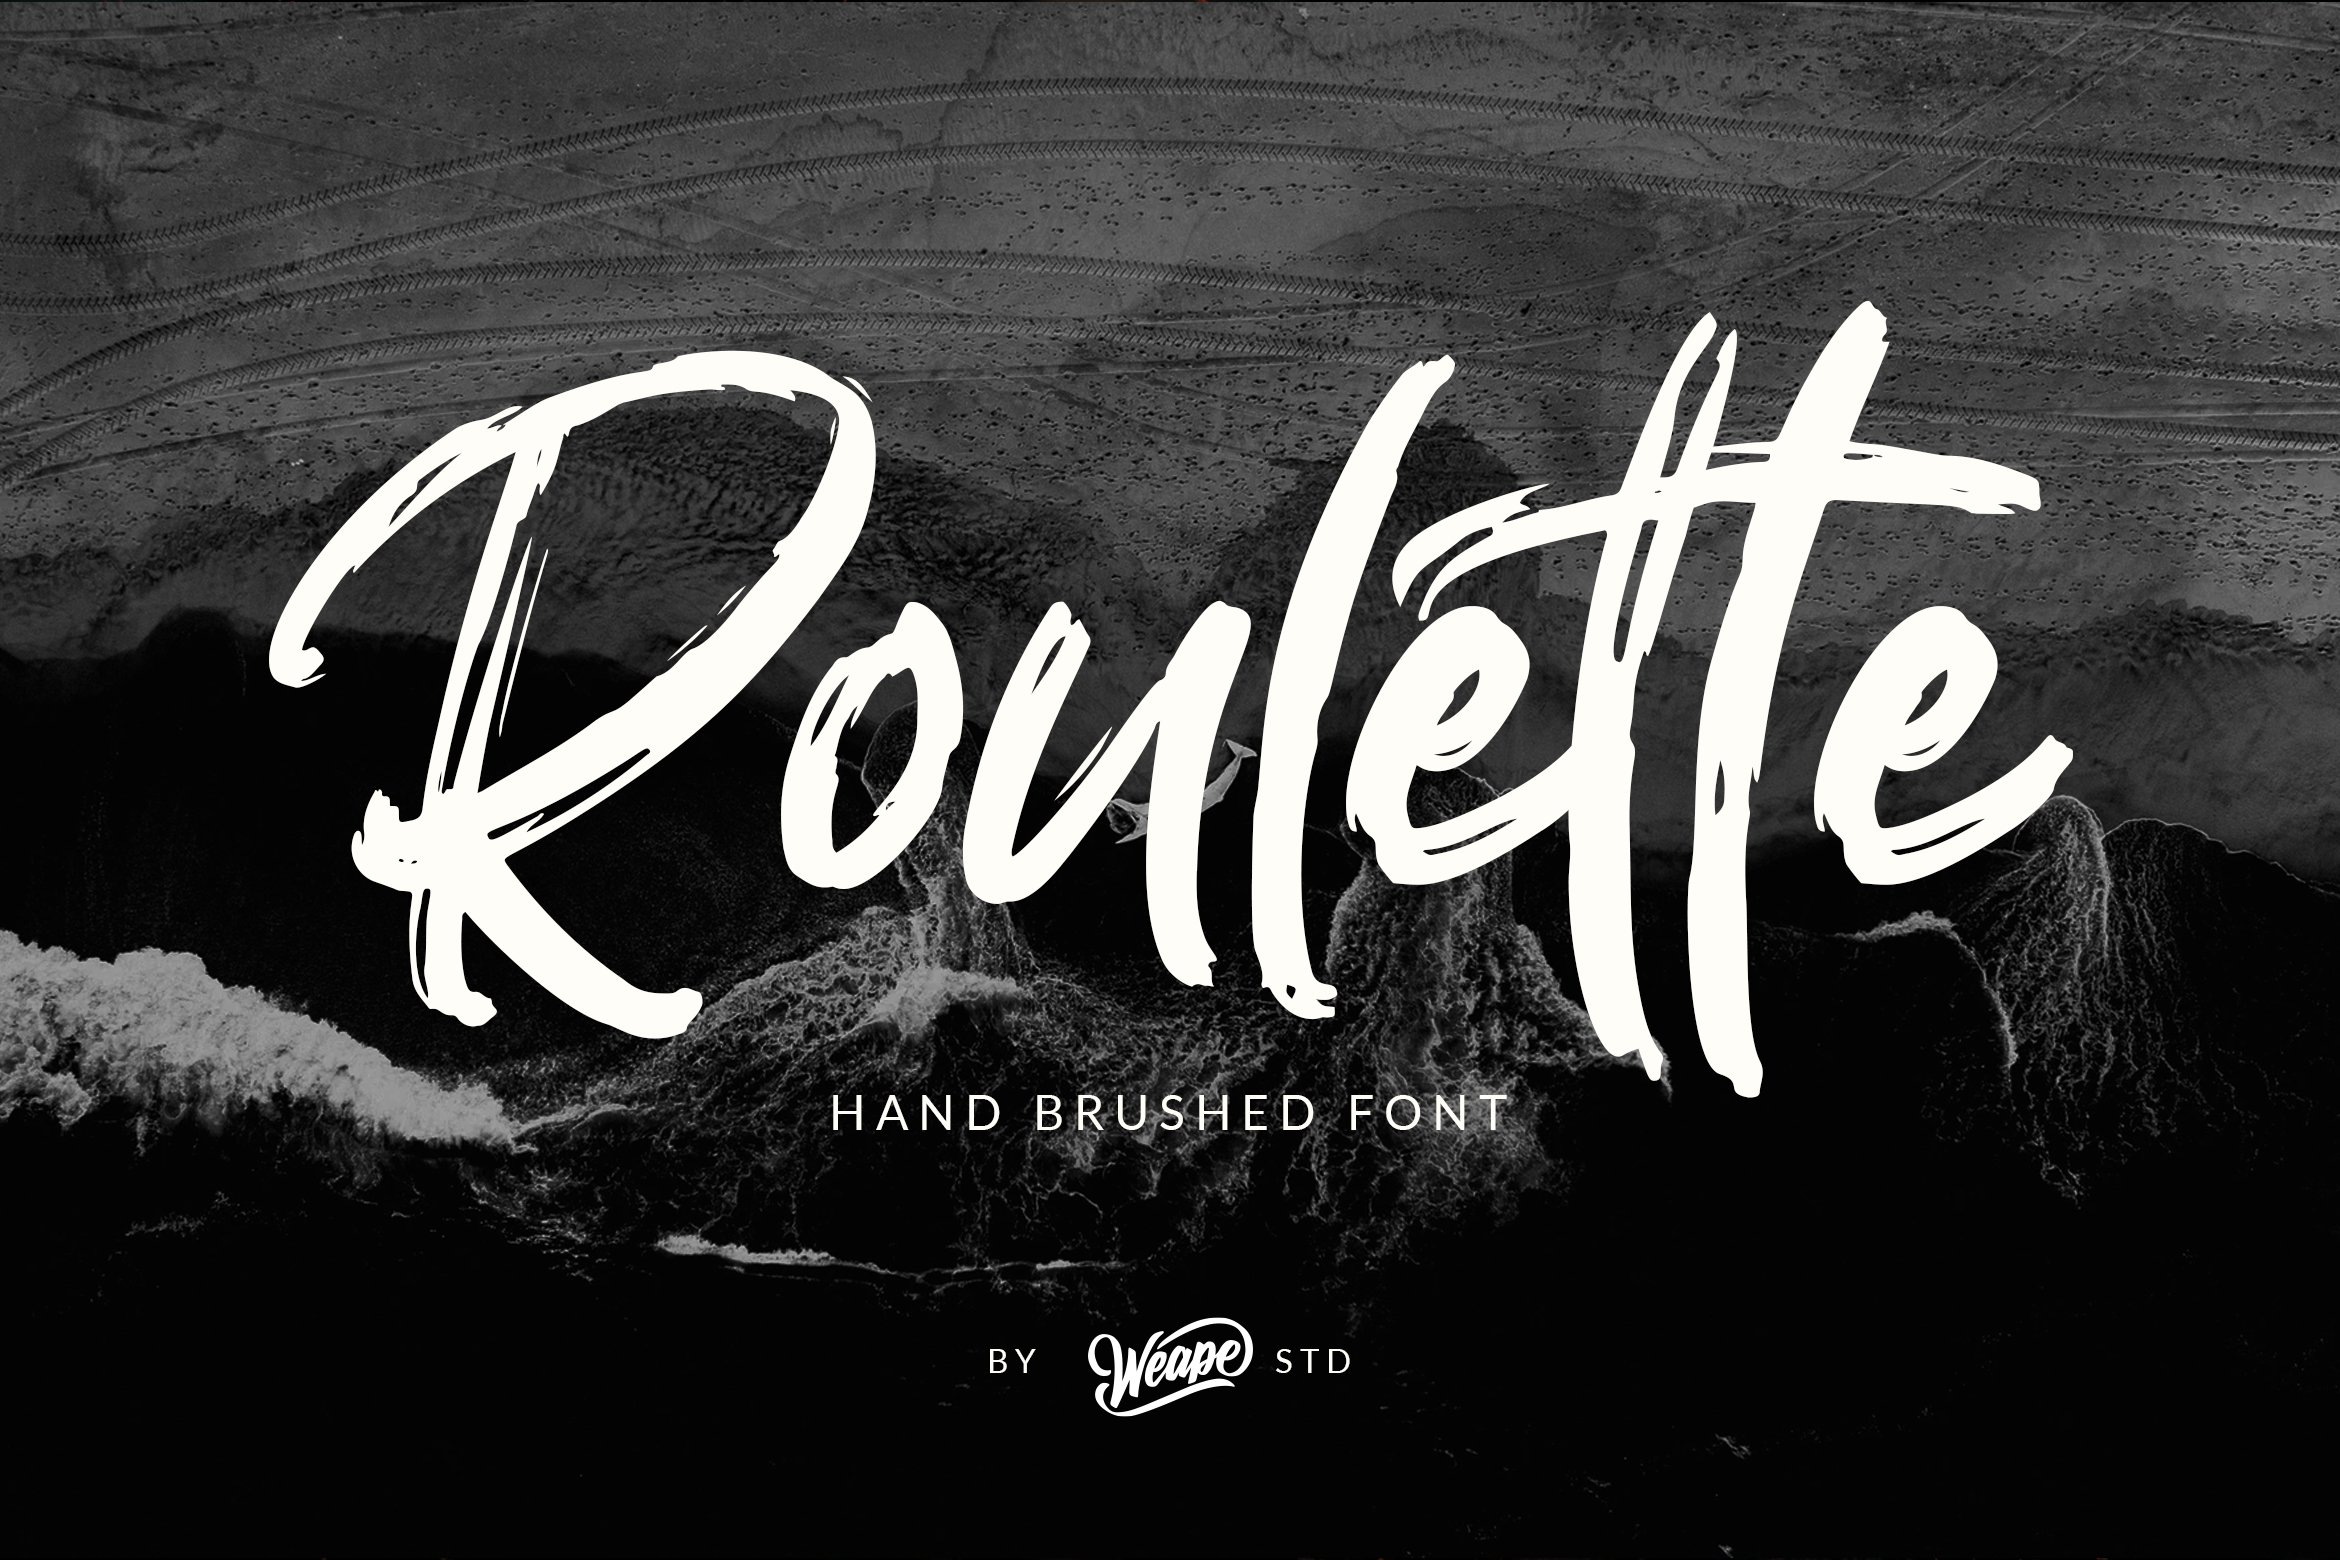 Roulette - Hand Brushed Font example image 1